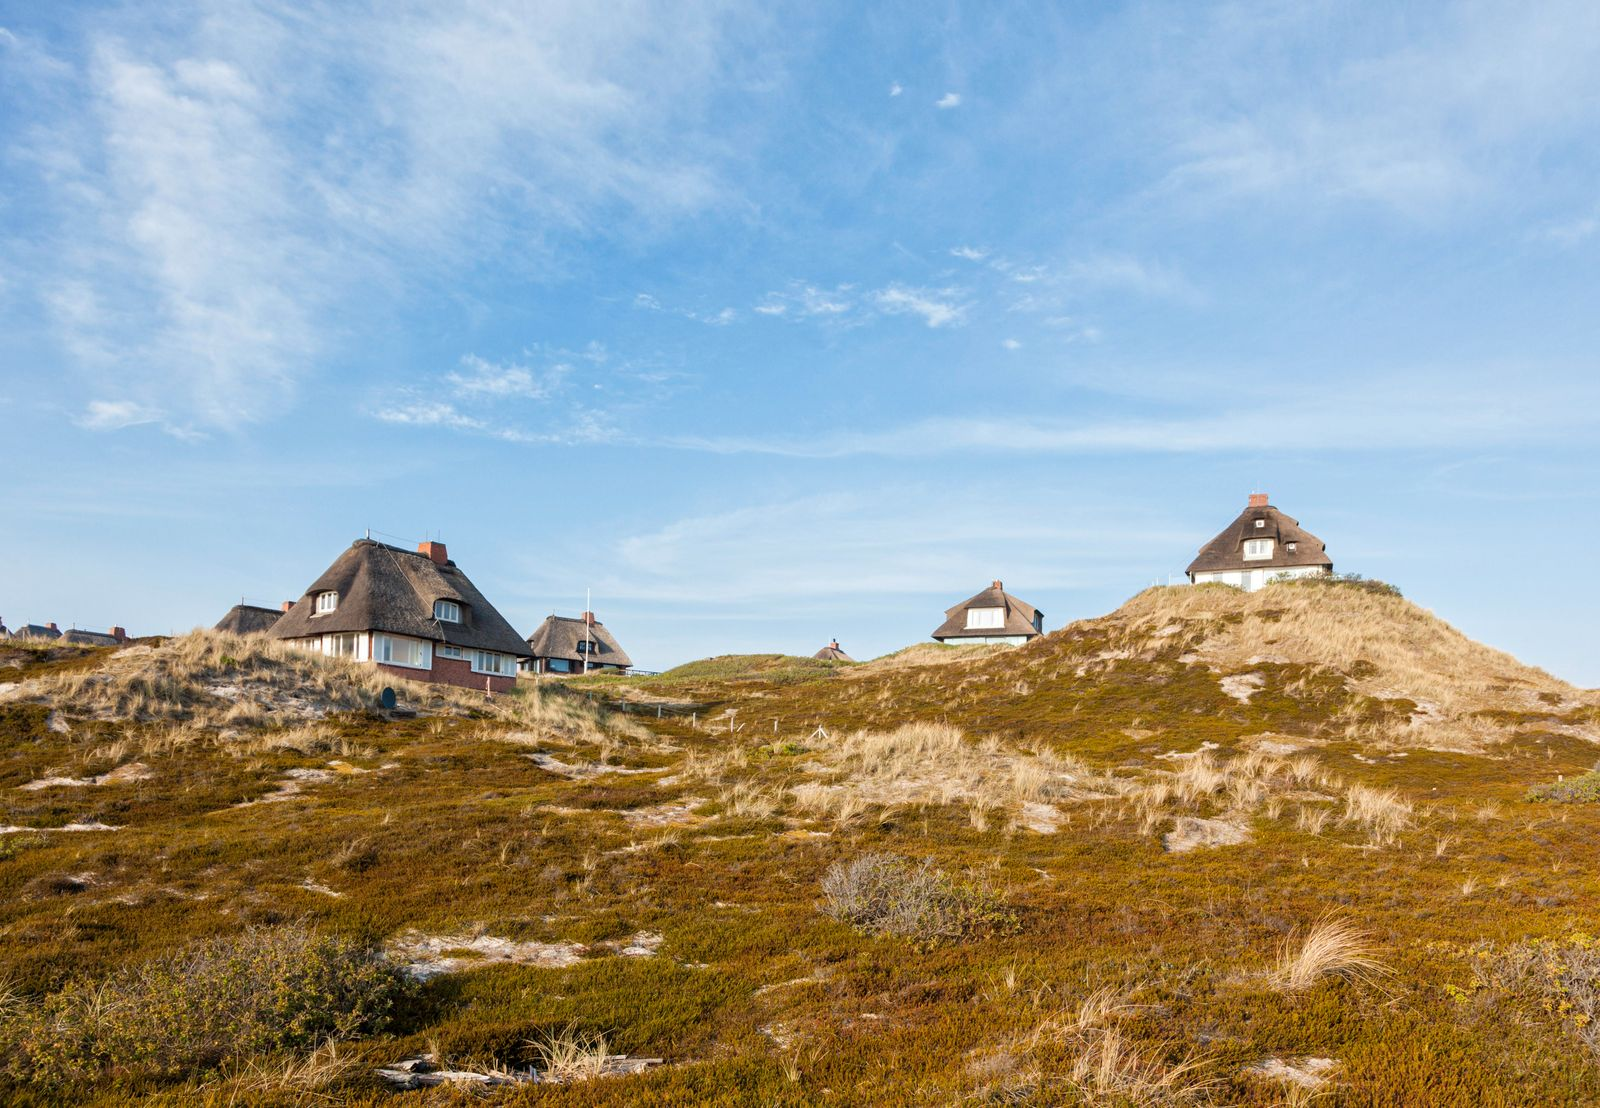 Summer houses in the dunes of Sylt, Germany